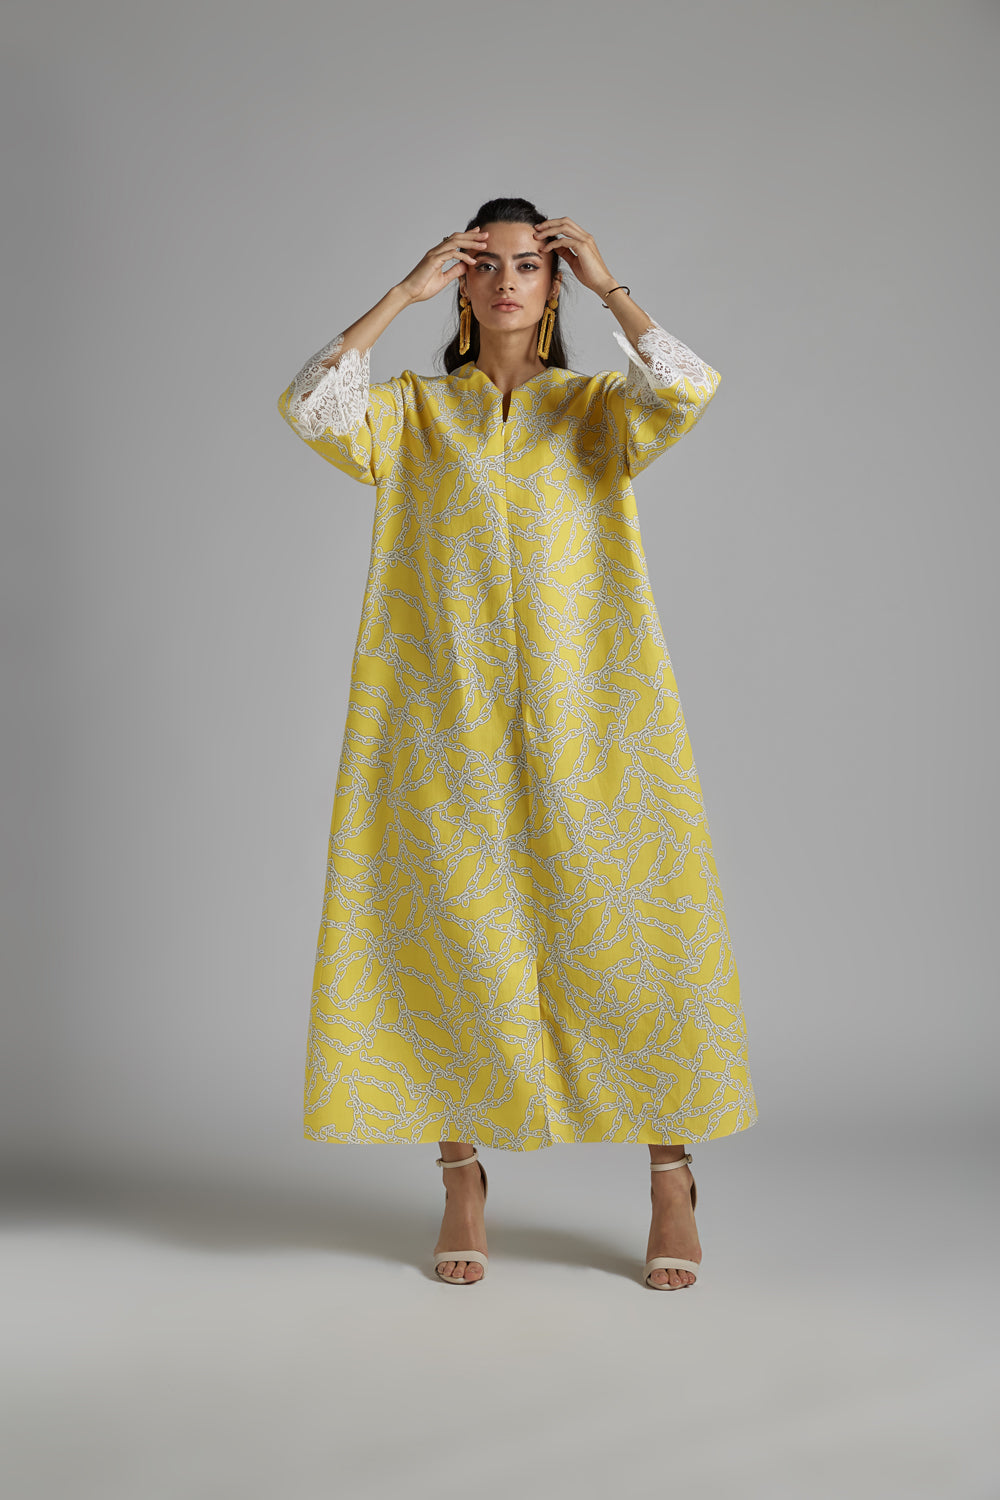 Trimmed Linen Dress - Citron